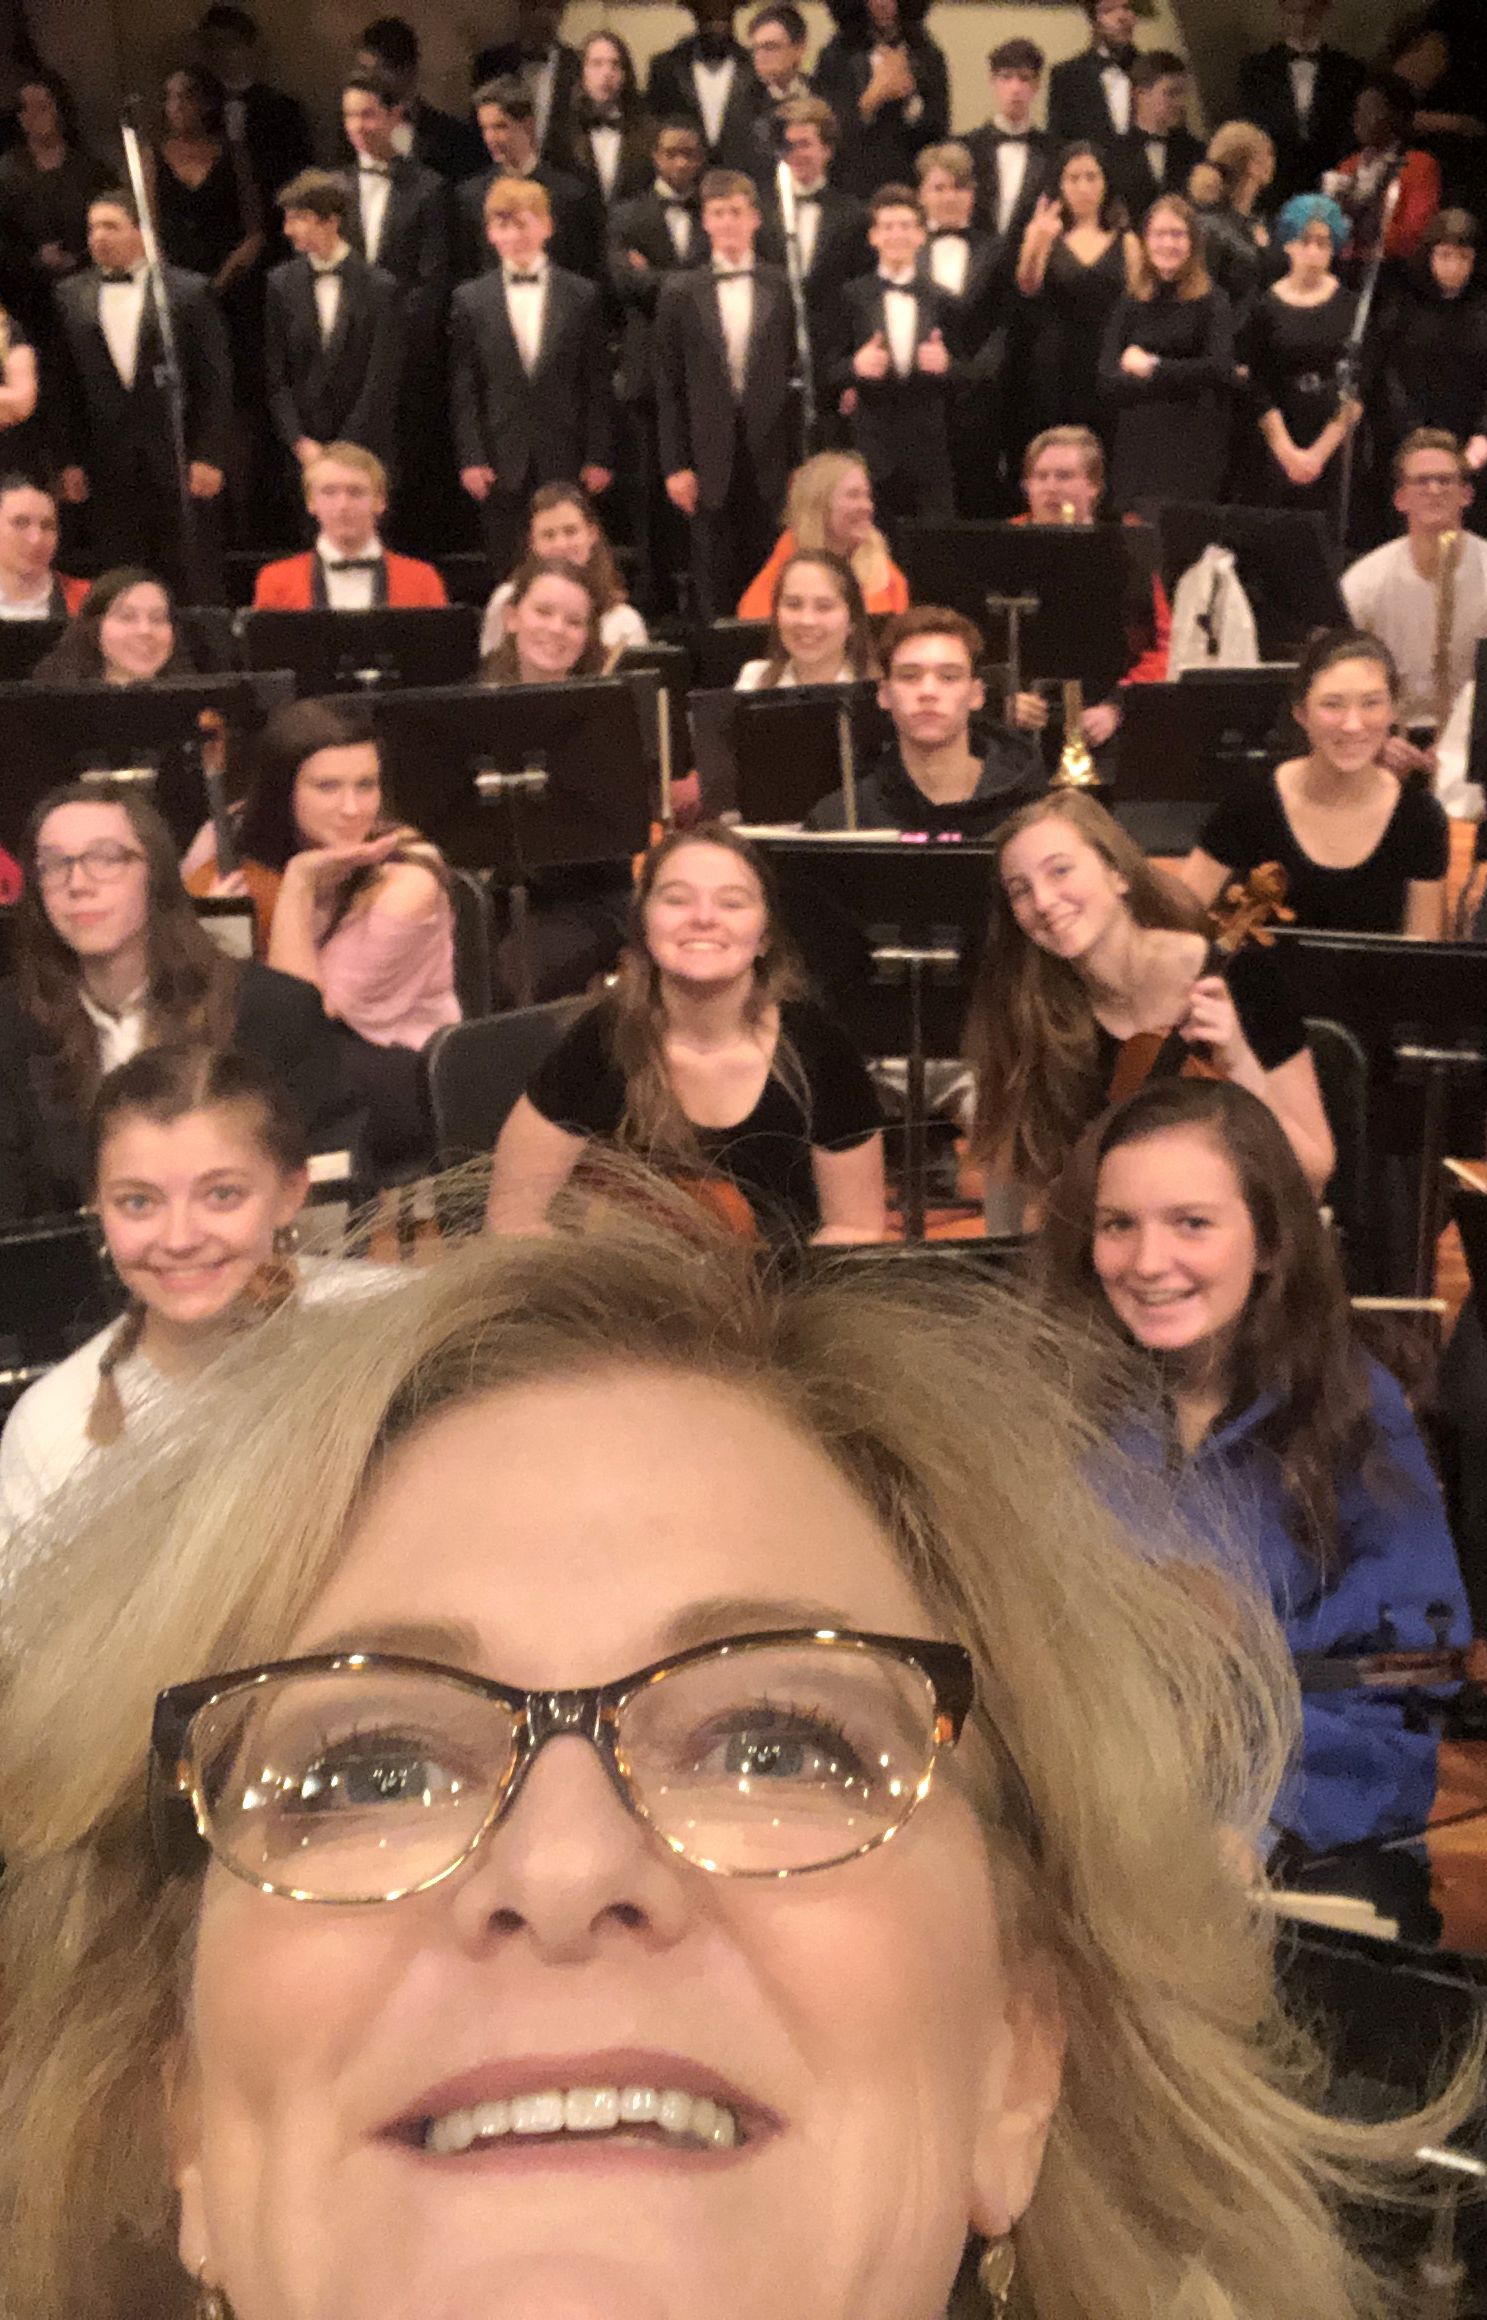 Director Laura Mulligan Thomas appears in the foreground as she takes a 'selfie' style photo of the orchestra